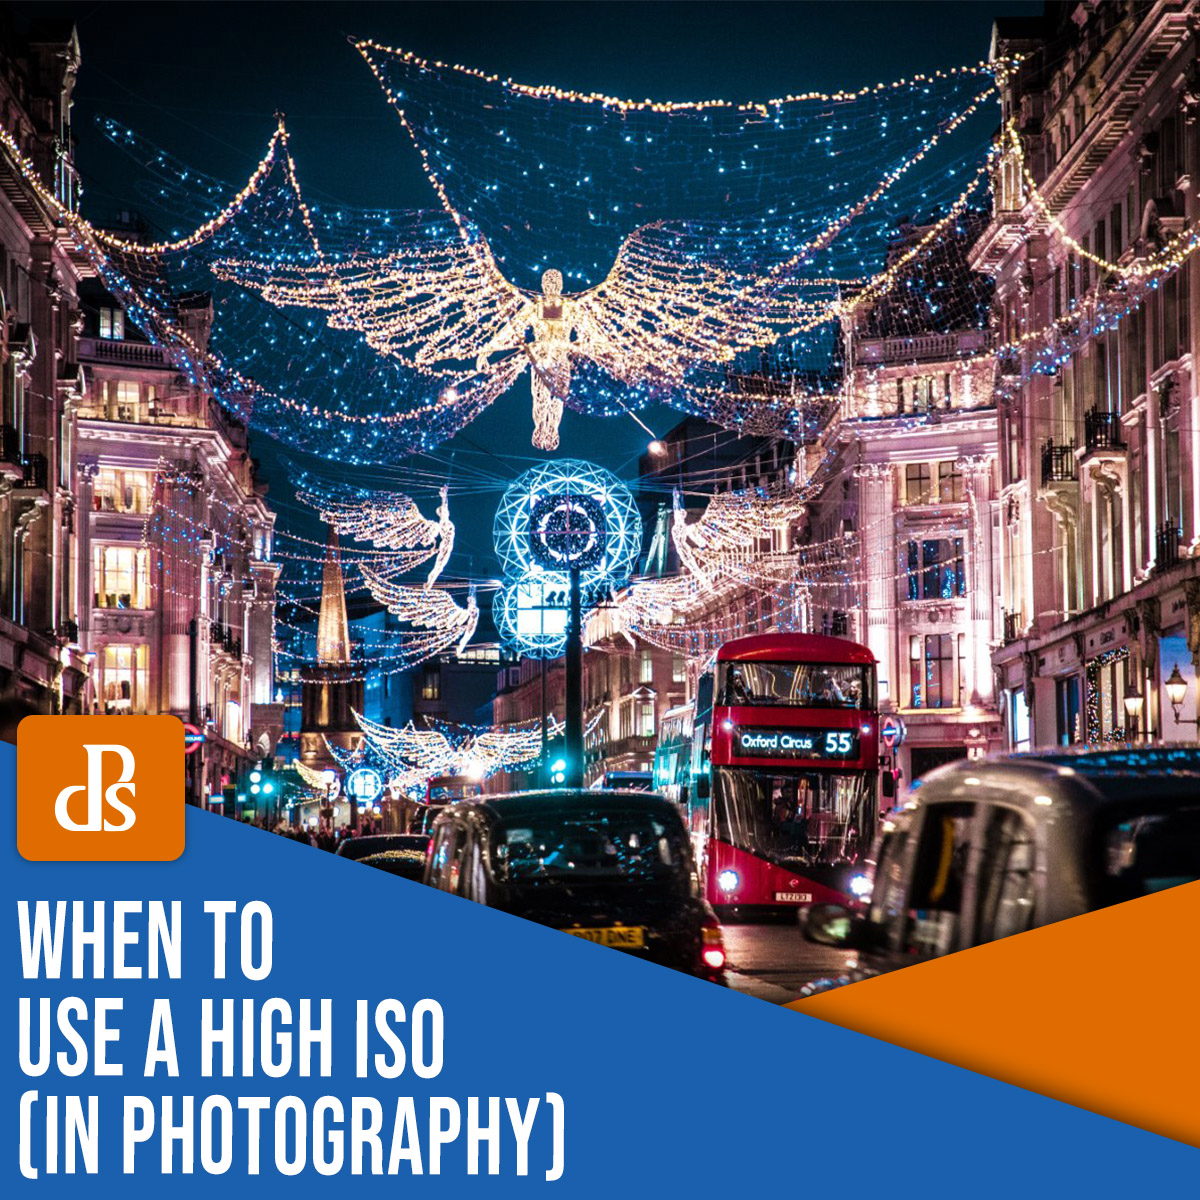 when to use a high ISO in photography